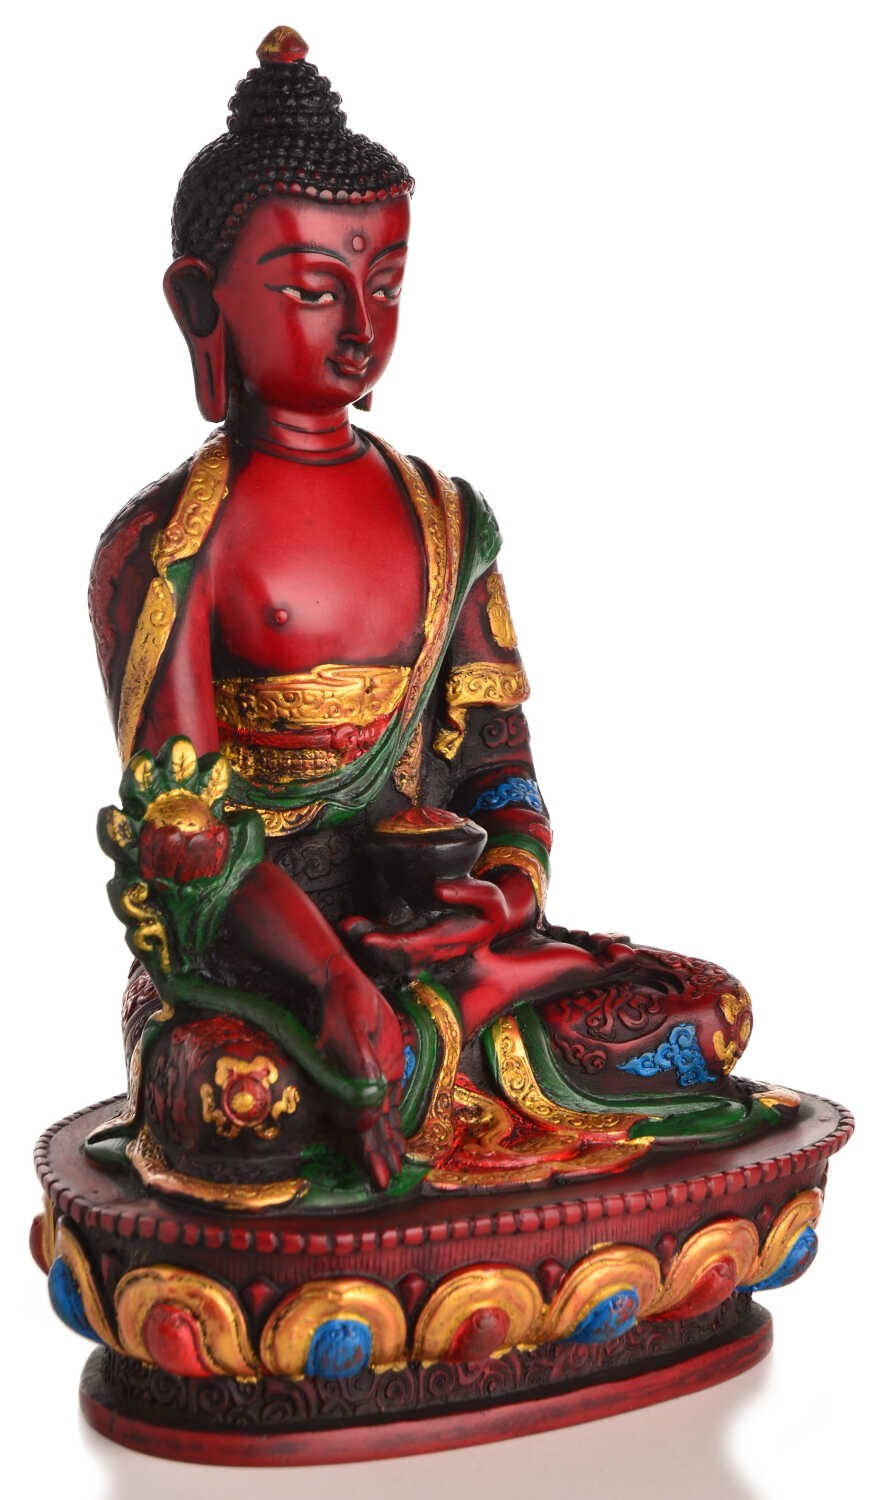 medizin buddha statue bemalt resin rot 20 cm nepal kaufen. Black Bedroom Furniture Sets. Home Design Ideas